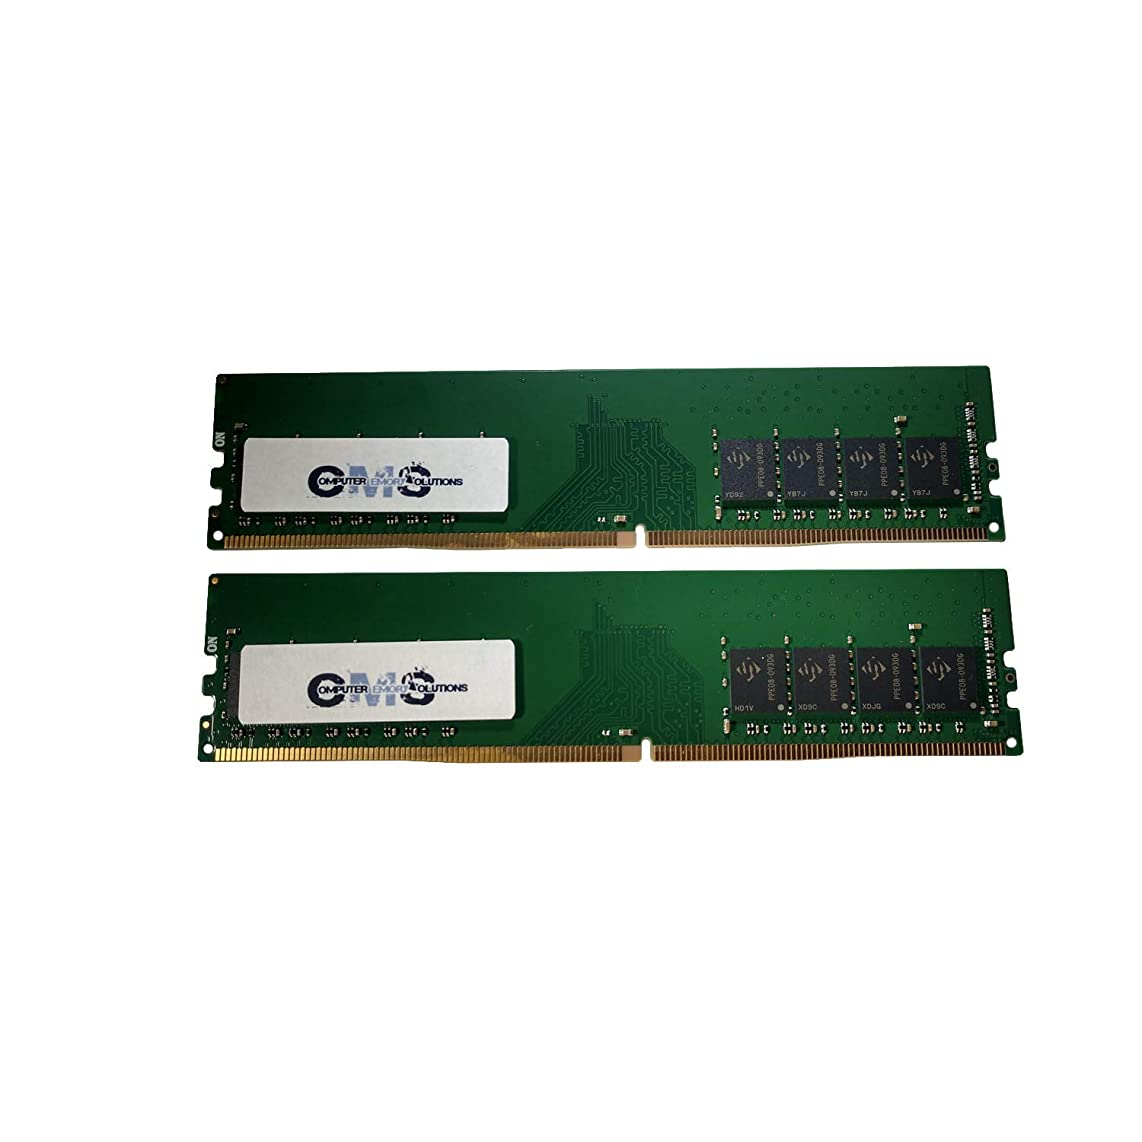 8GB (2X4GB) Memory RAM Compatible with ASUS/ASmobile - Z170I PRO Gaming, Strix H270I Gaming, Strix Z270I Gaming, B150i PRO Gaming/WiFi/Aura Motherboards by CMS C117